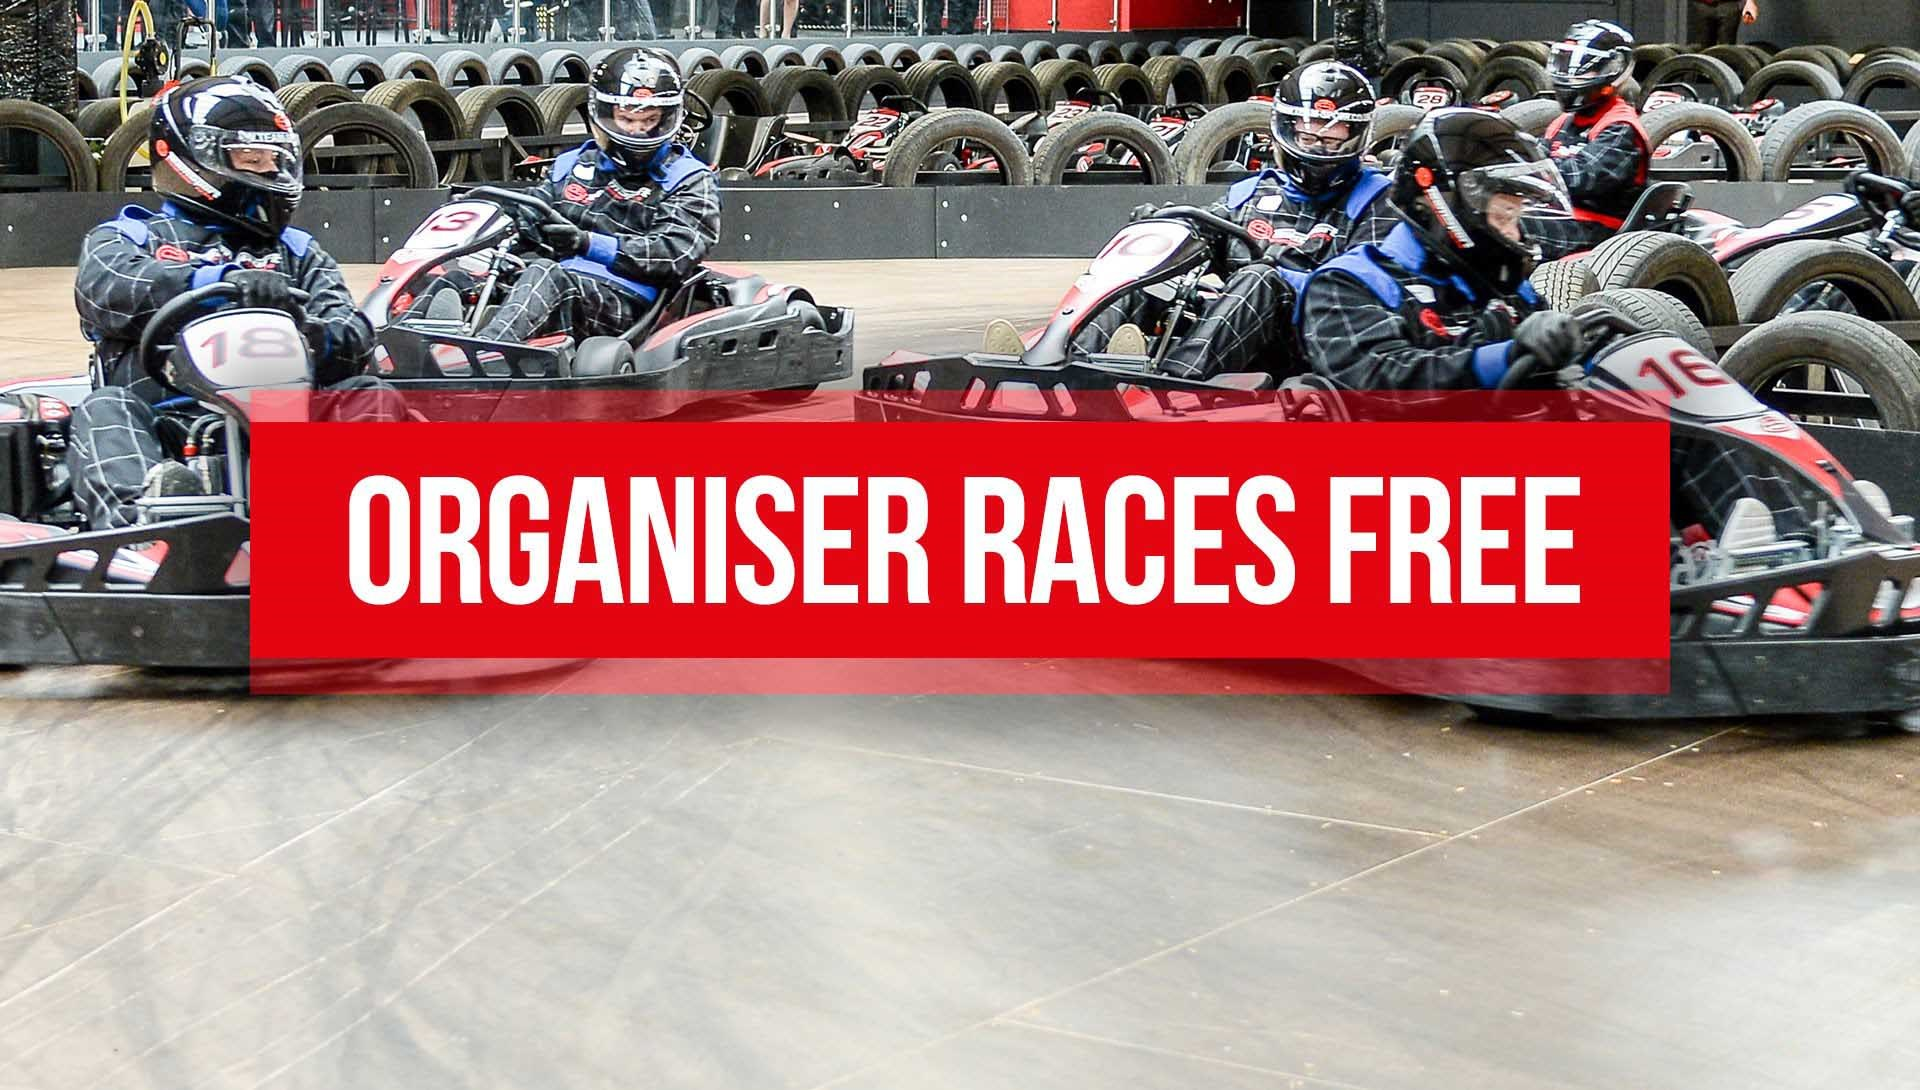 TeamSport_Organiser_Races_Free_Offer_Main_Header_1920x1090-min.jpg